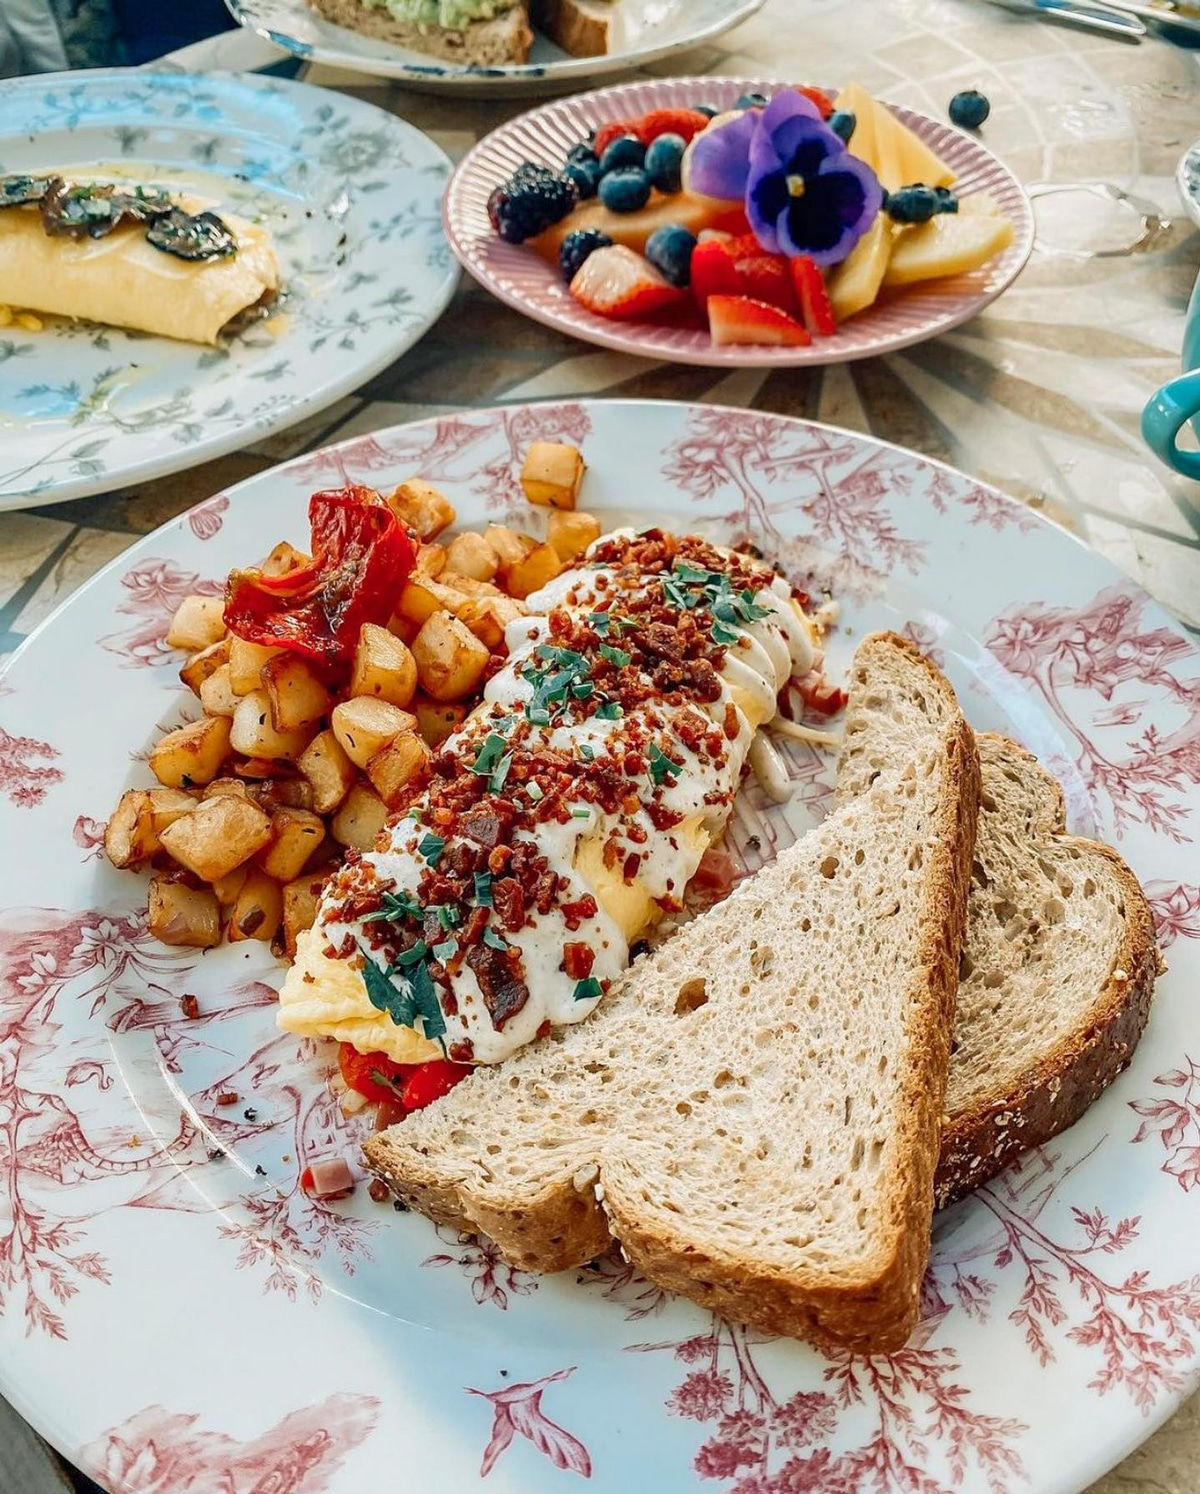 Miami Brunch Hostspot Little Hen in Midtown Miami with Instagrammable location and food carbonara omlette